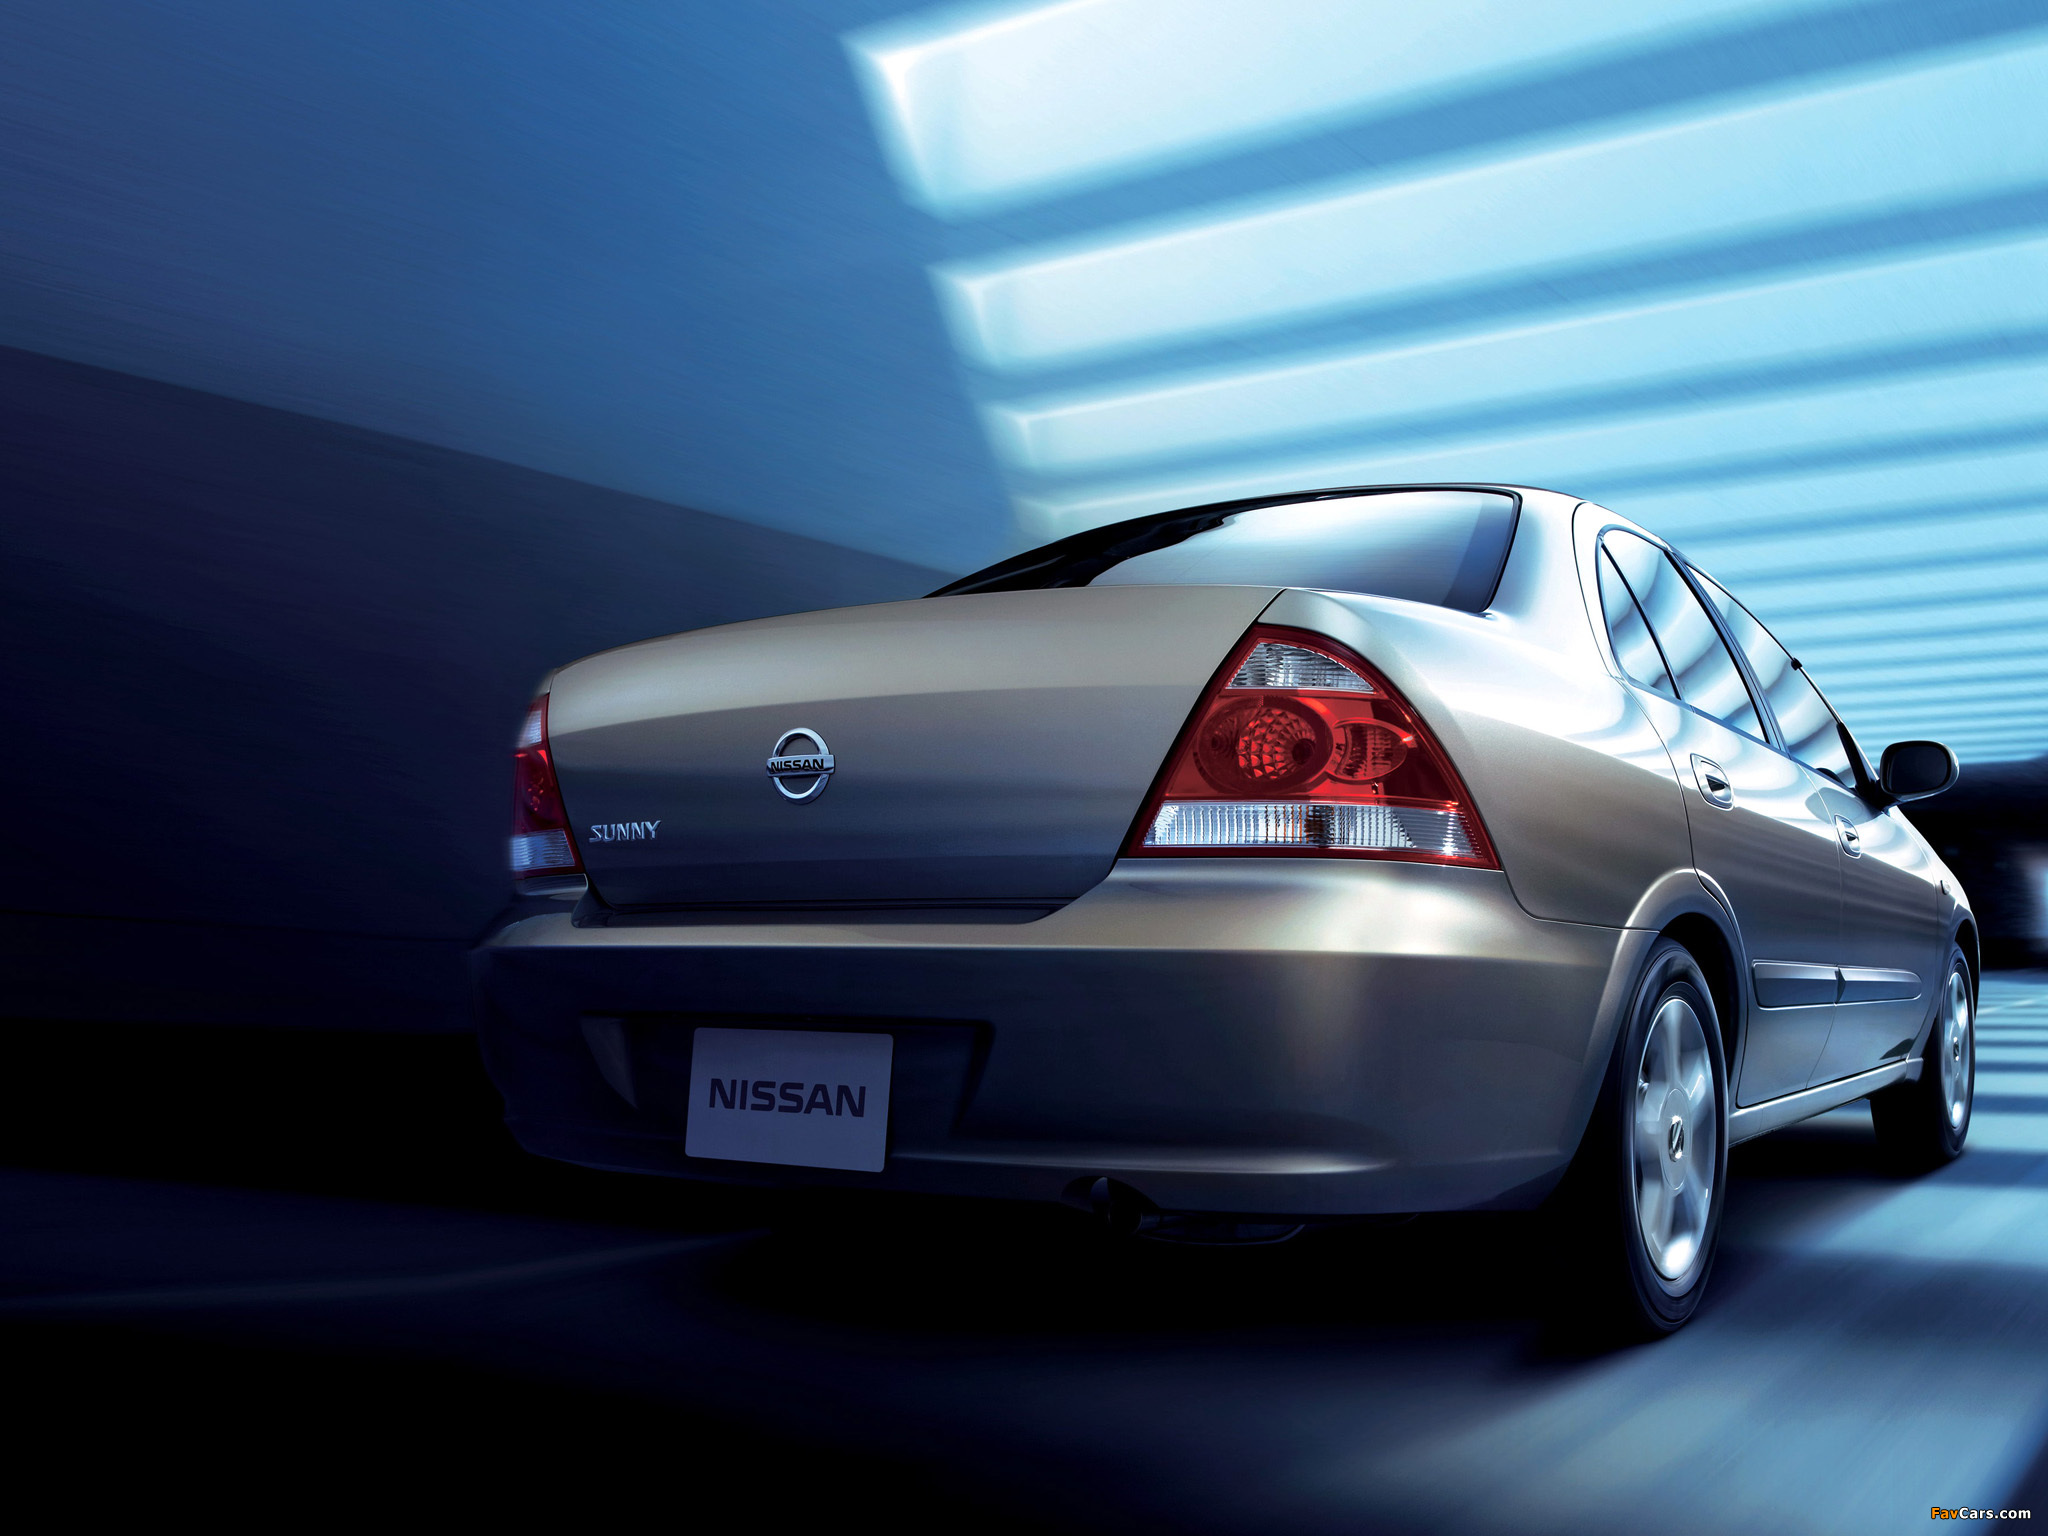 Nissan Sunny 2006 photo - 2